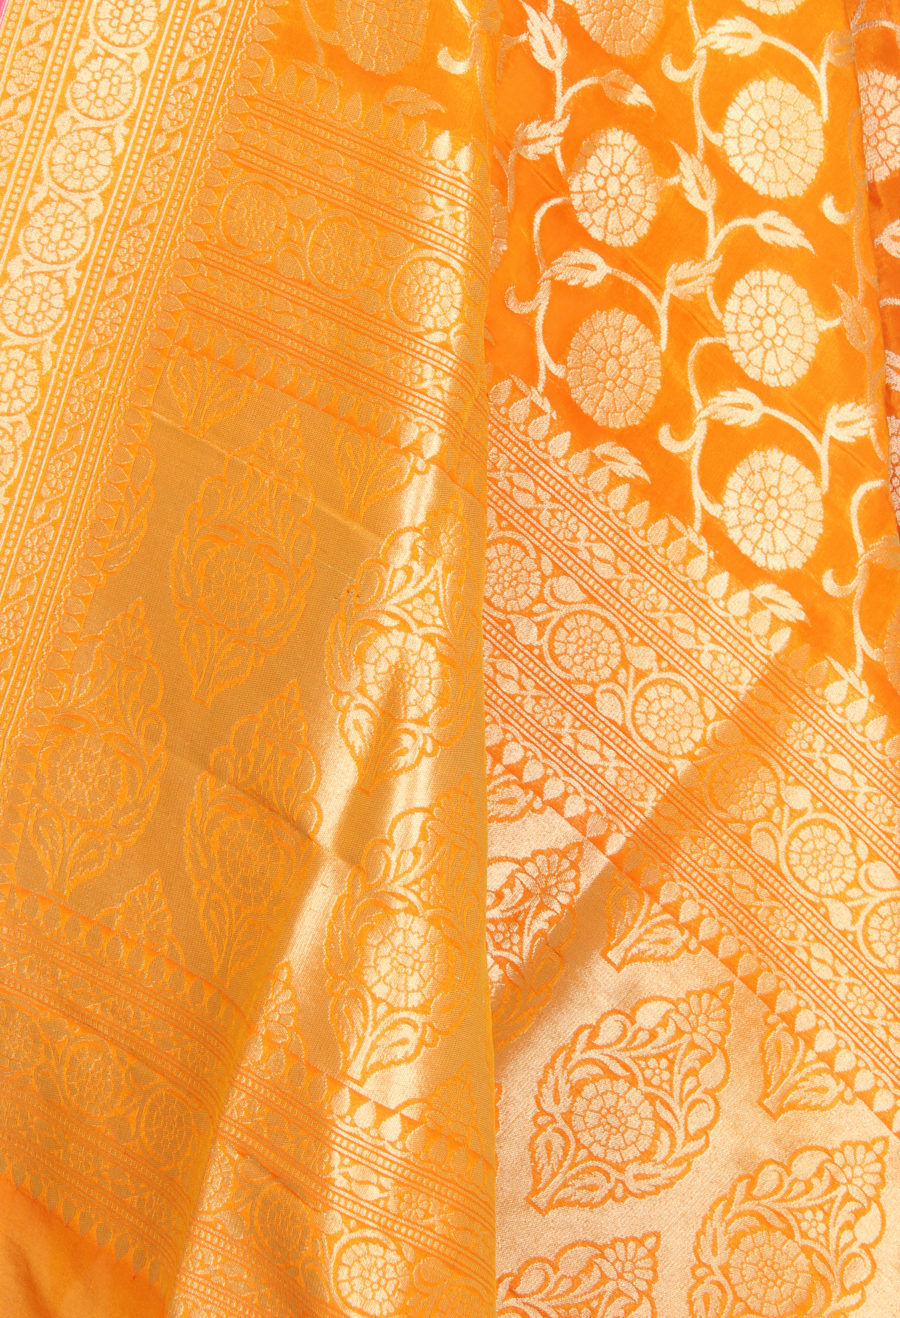 Orange Katan Silk Banarasi Dupatta with flower and leaf jaal (2) Close up